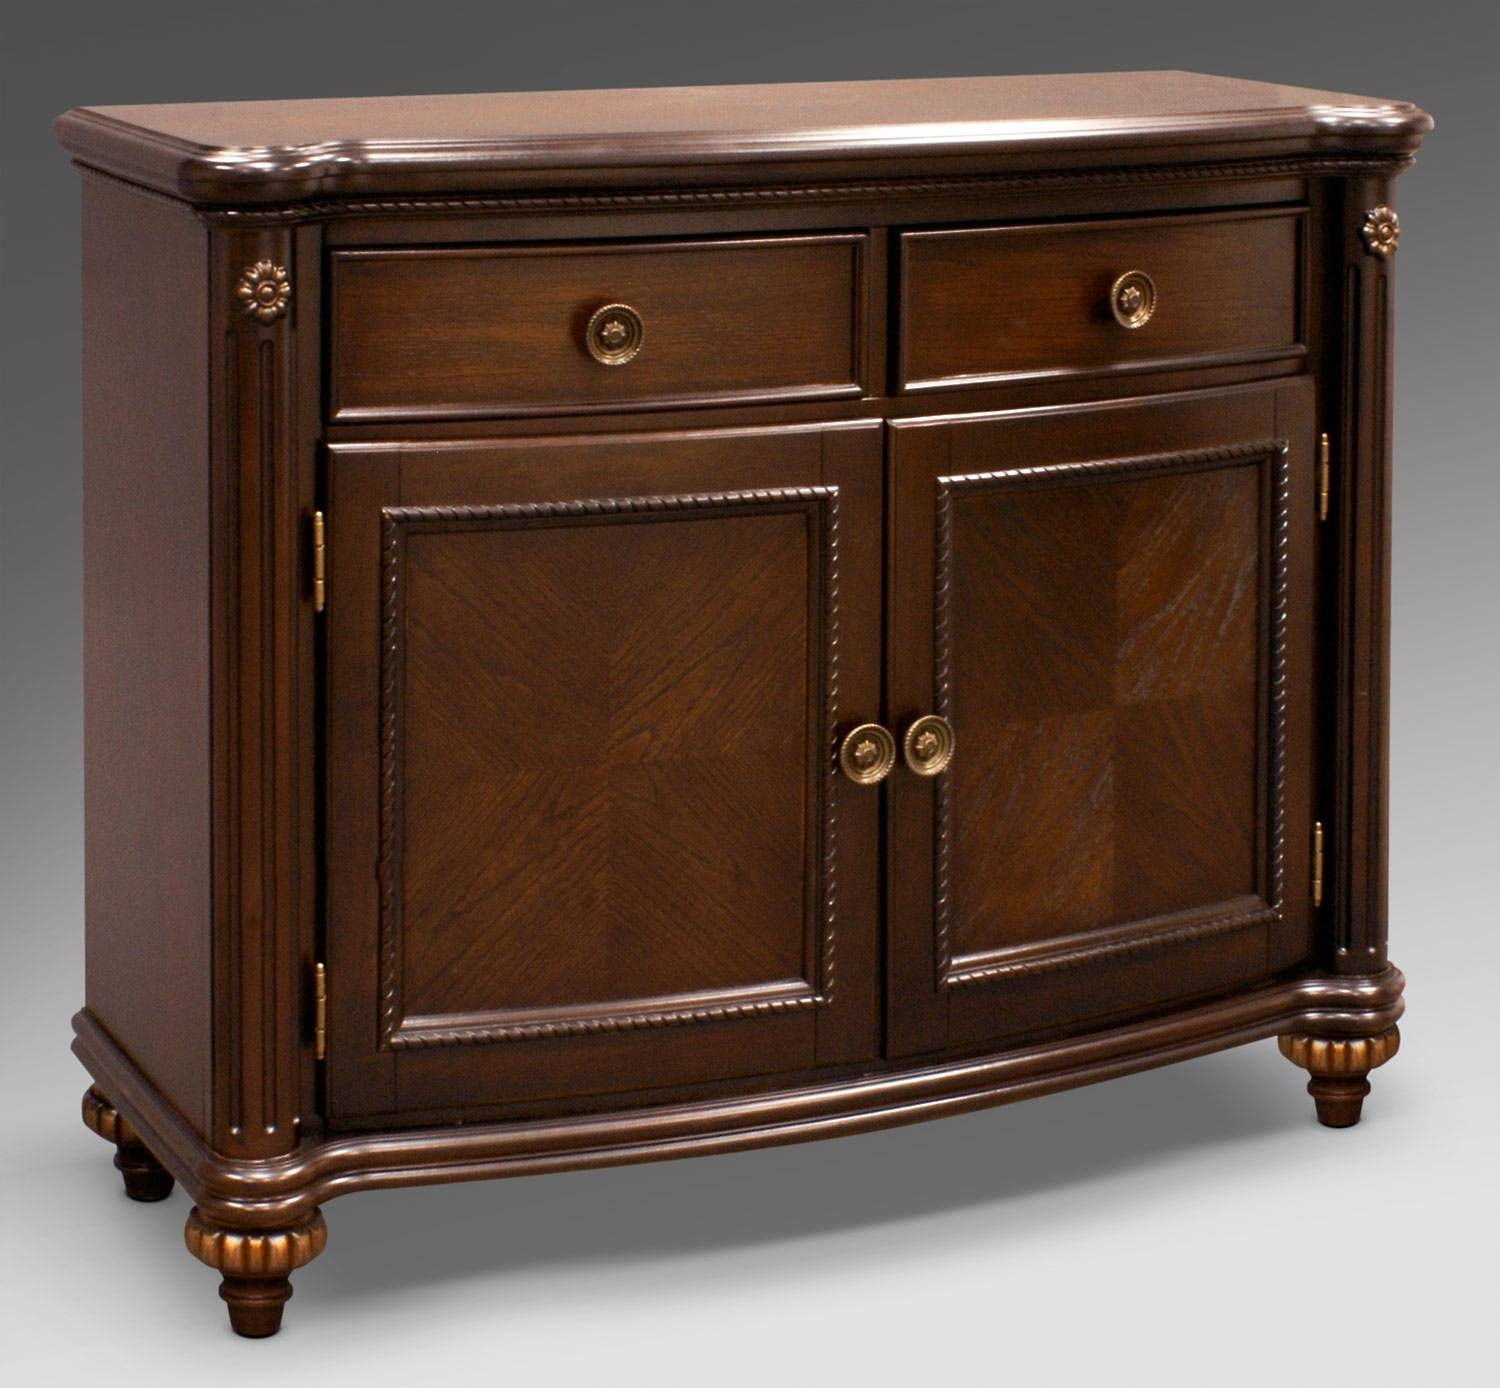 Dining Room Servers Buffet Furniture Pictures Cabinet Trends And with Thin Sideboards (Image 5 of 30)